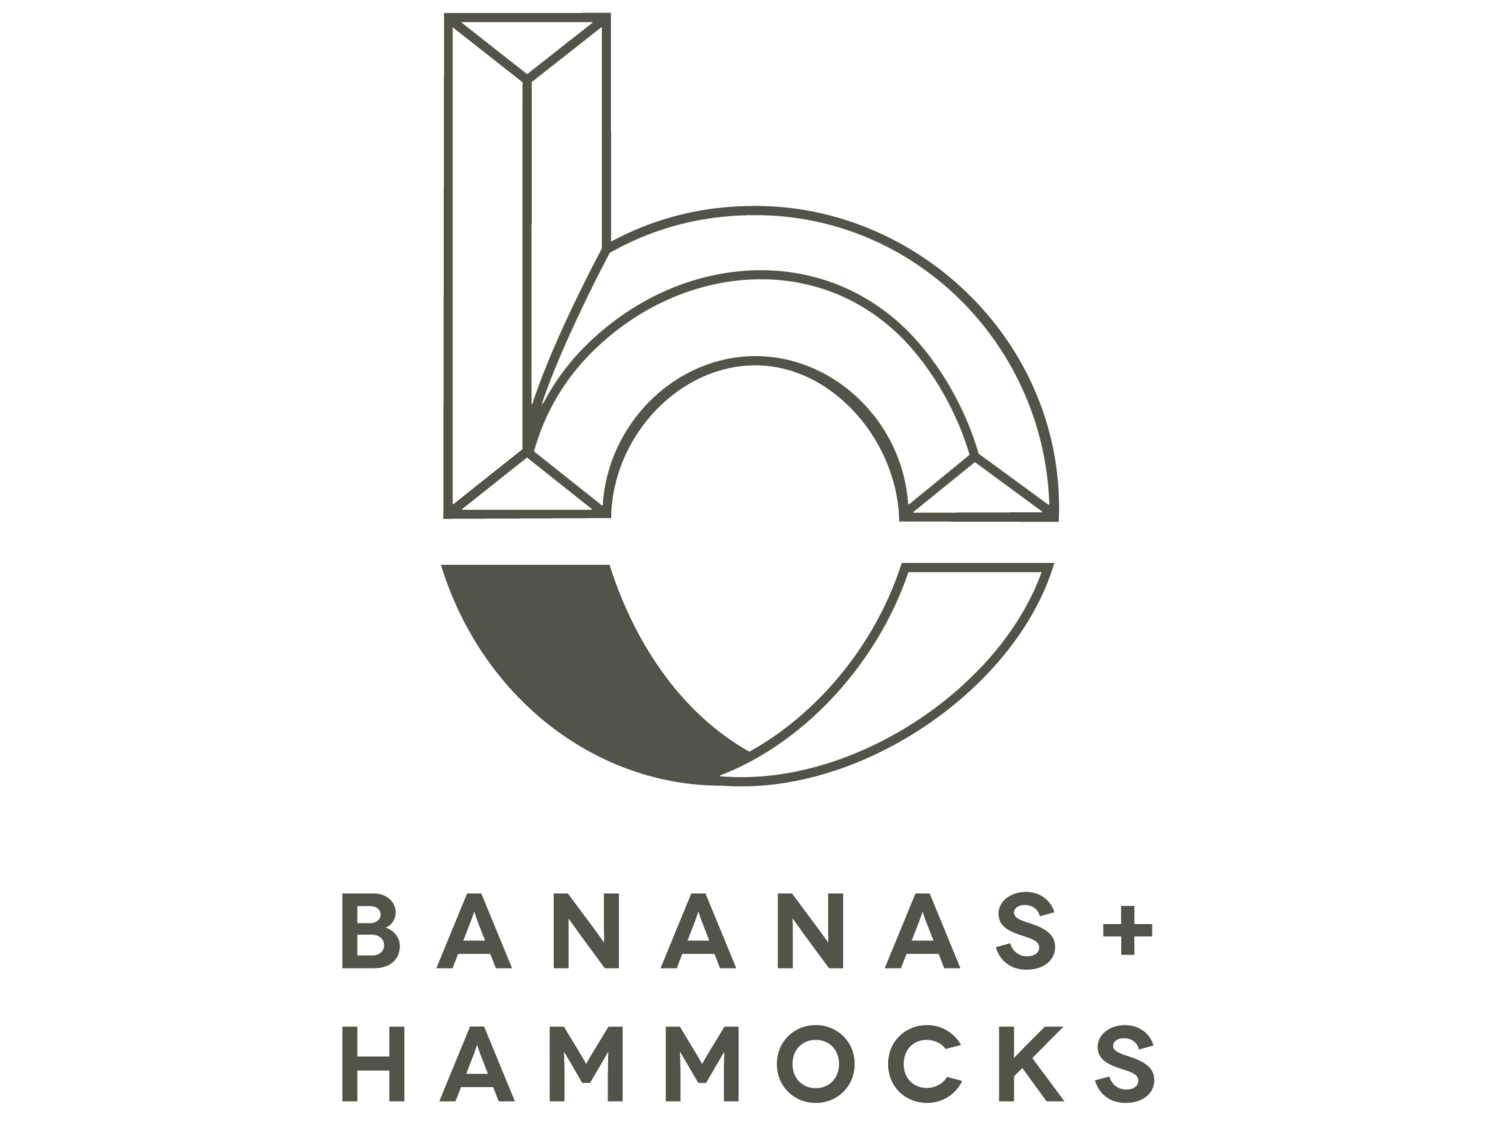 Bananas & Hammocks